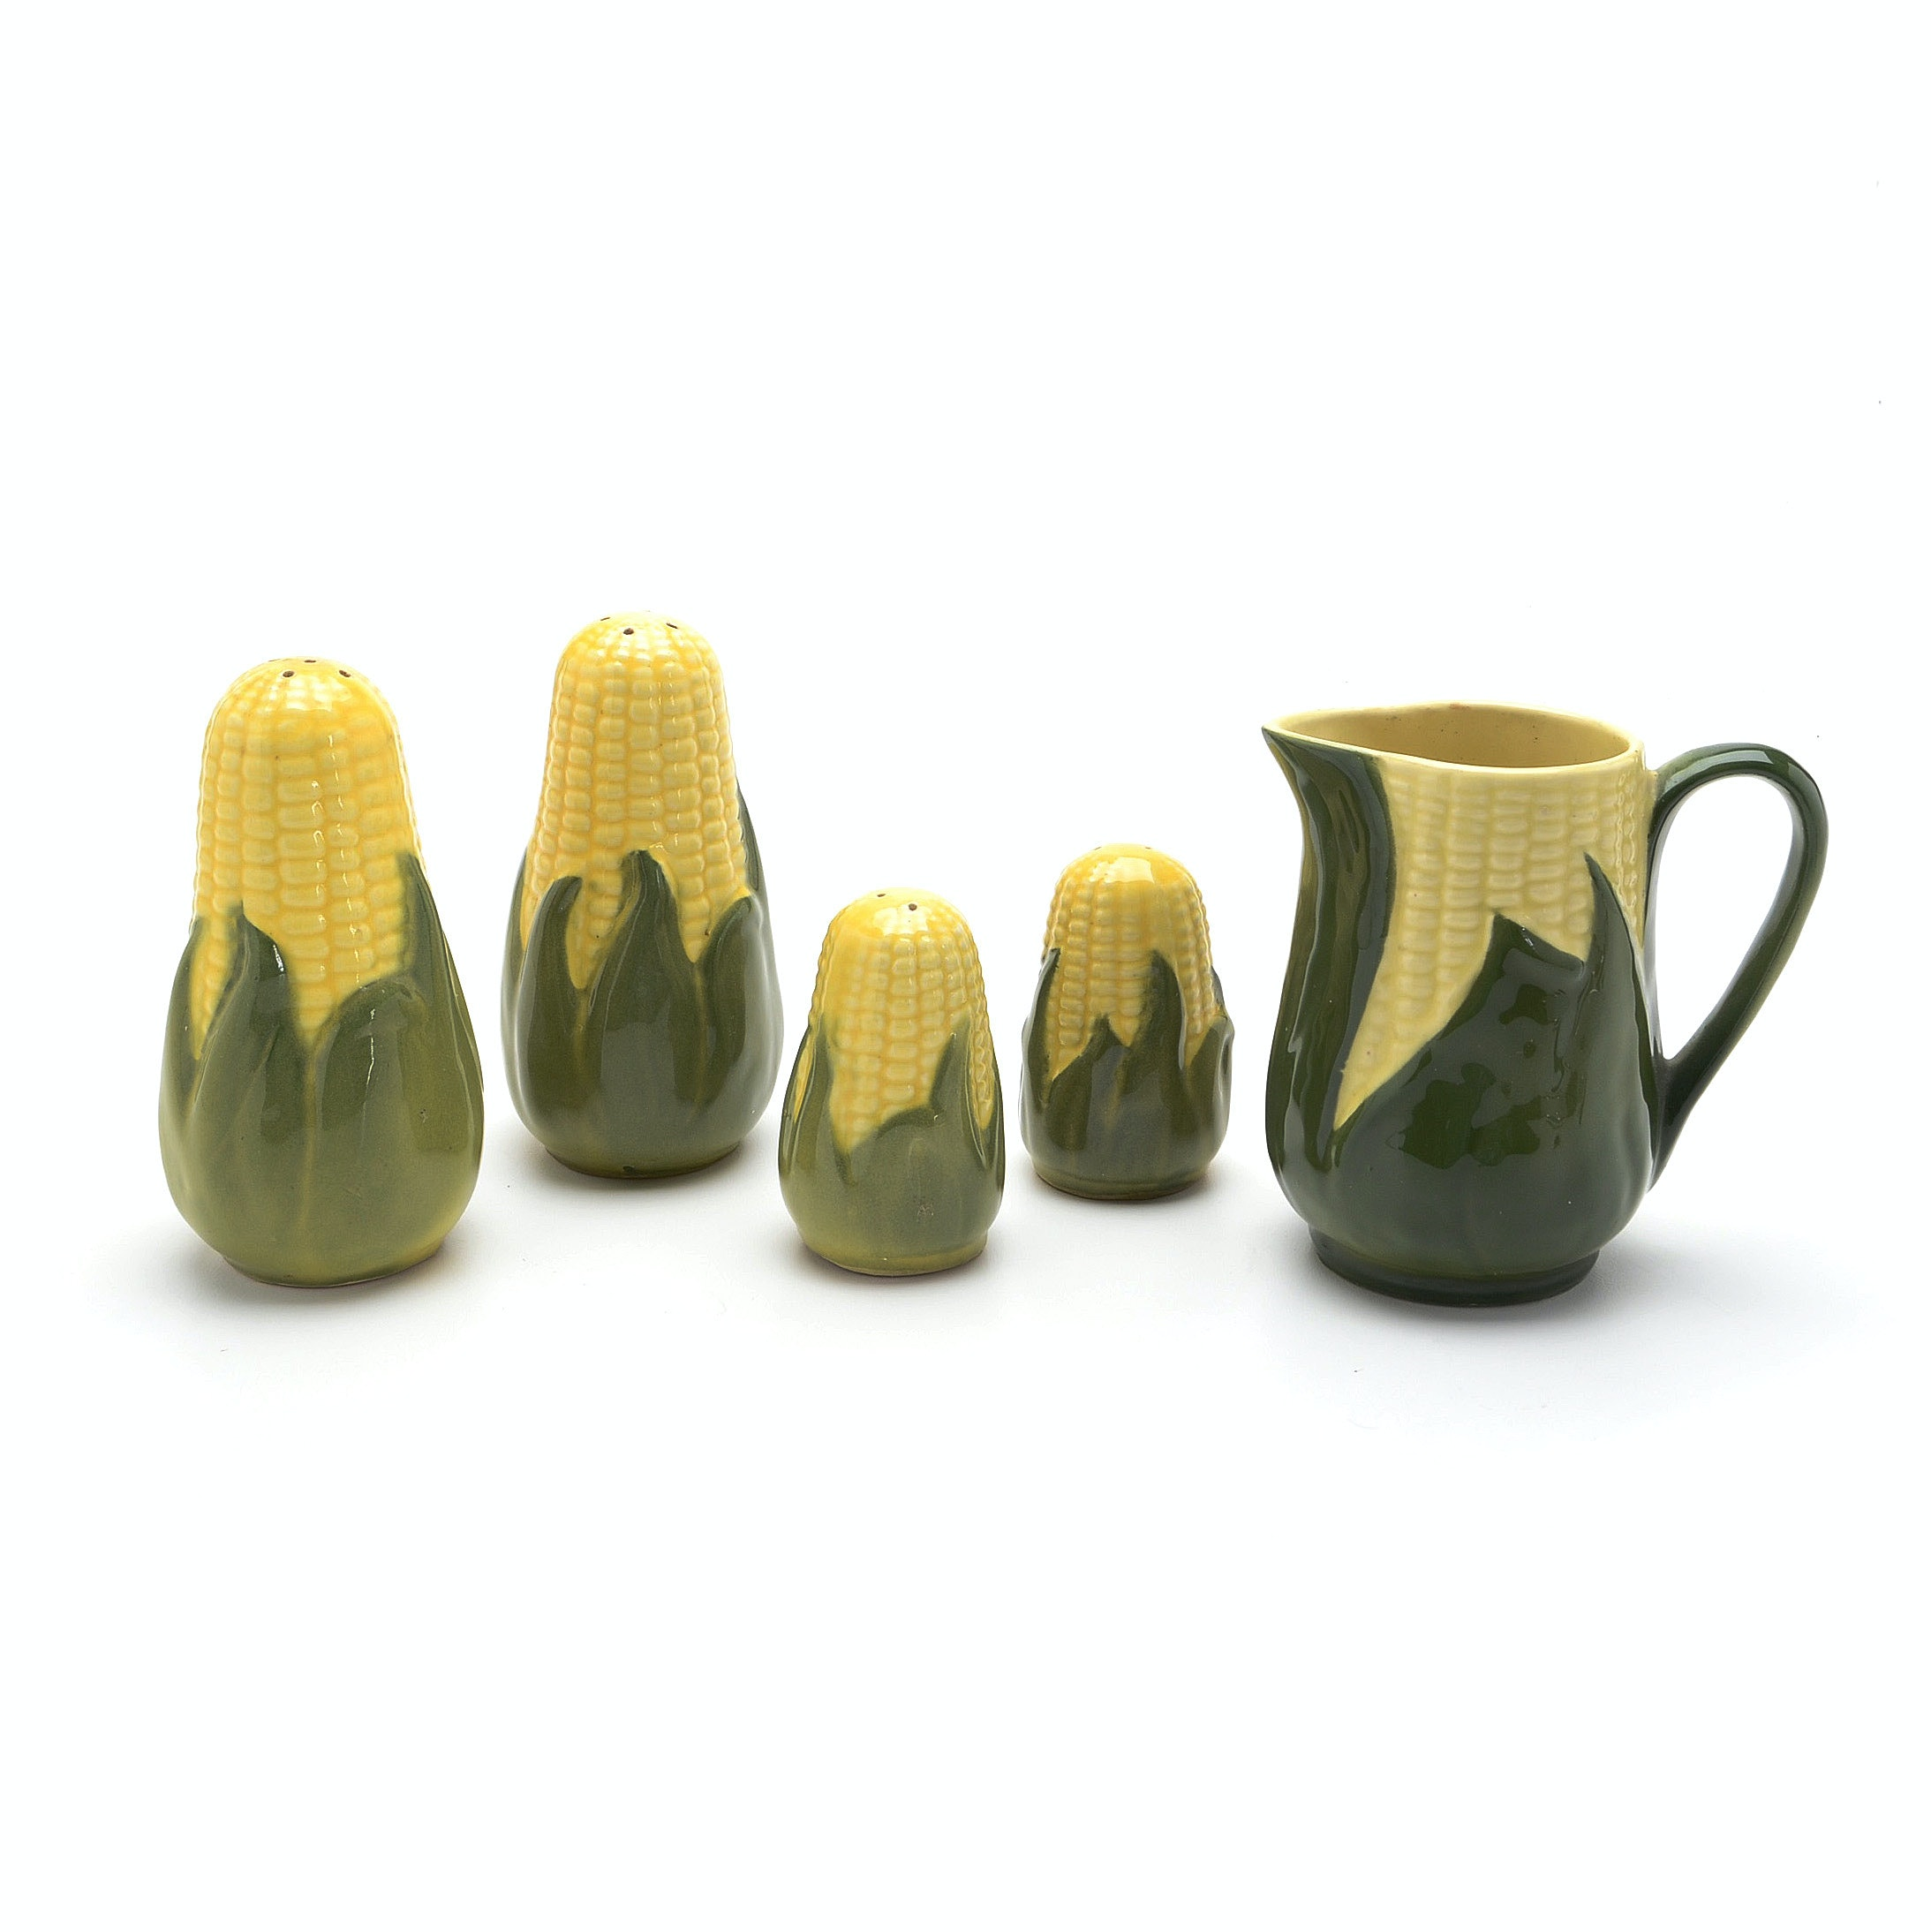 """Shawnee Pottery """"Corn King"""" Shakers and Creamer"""